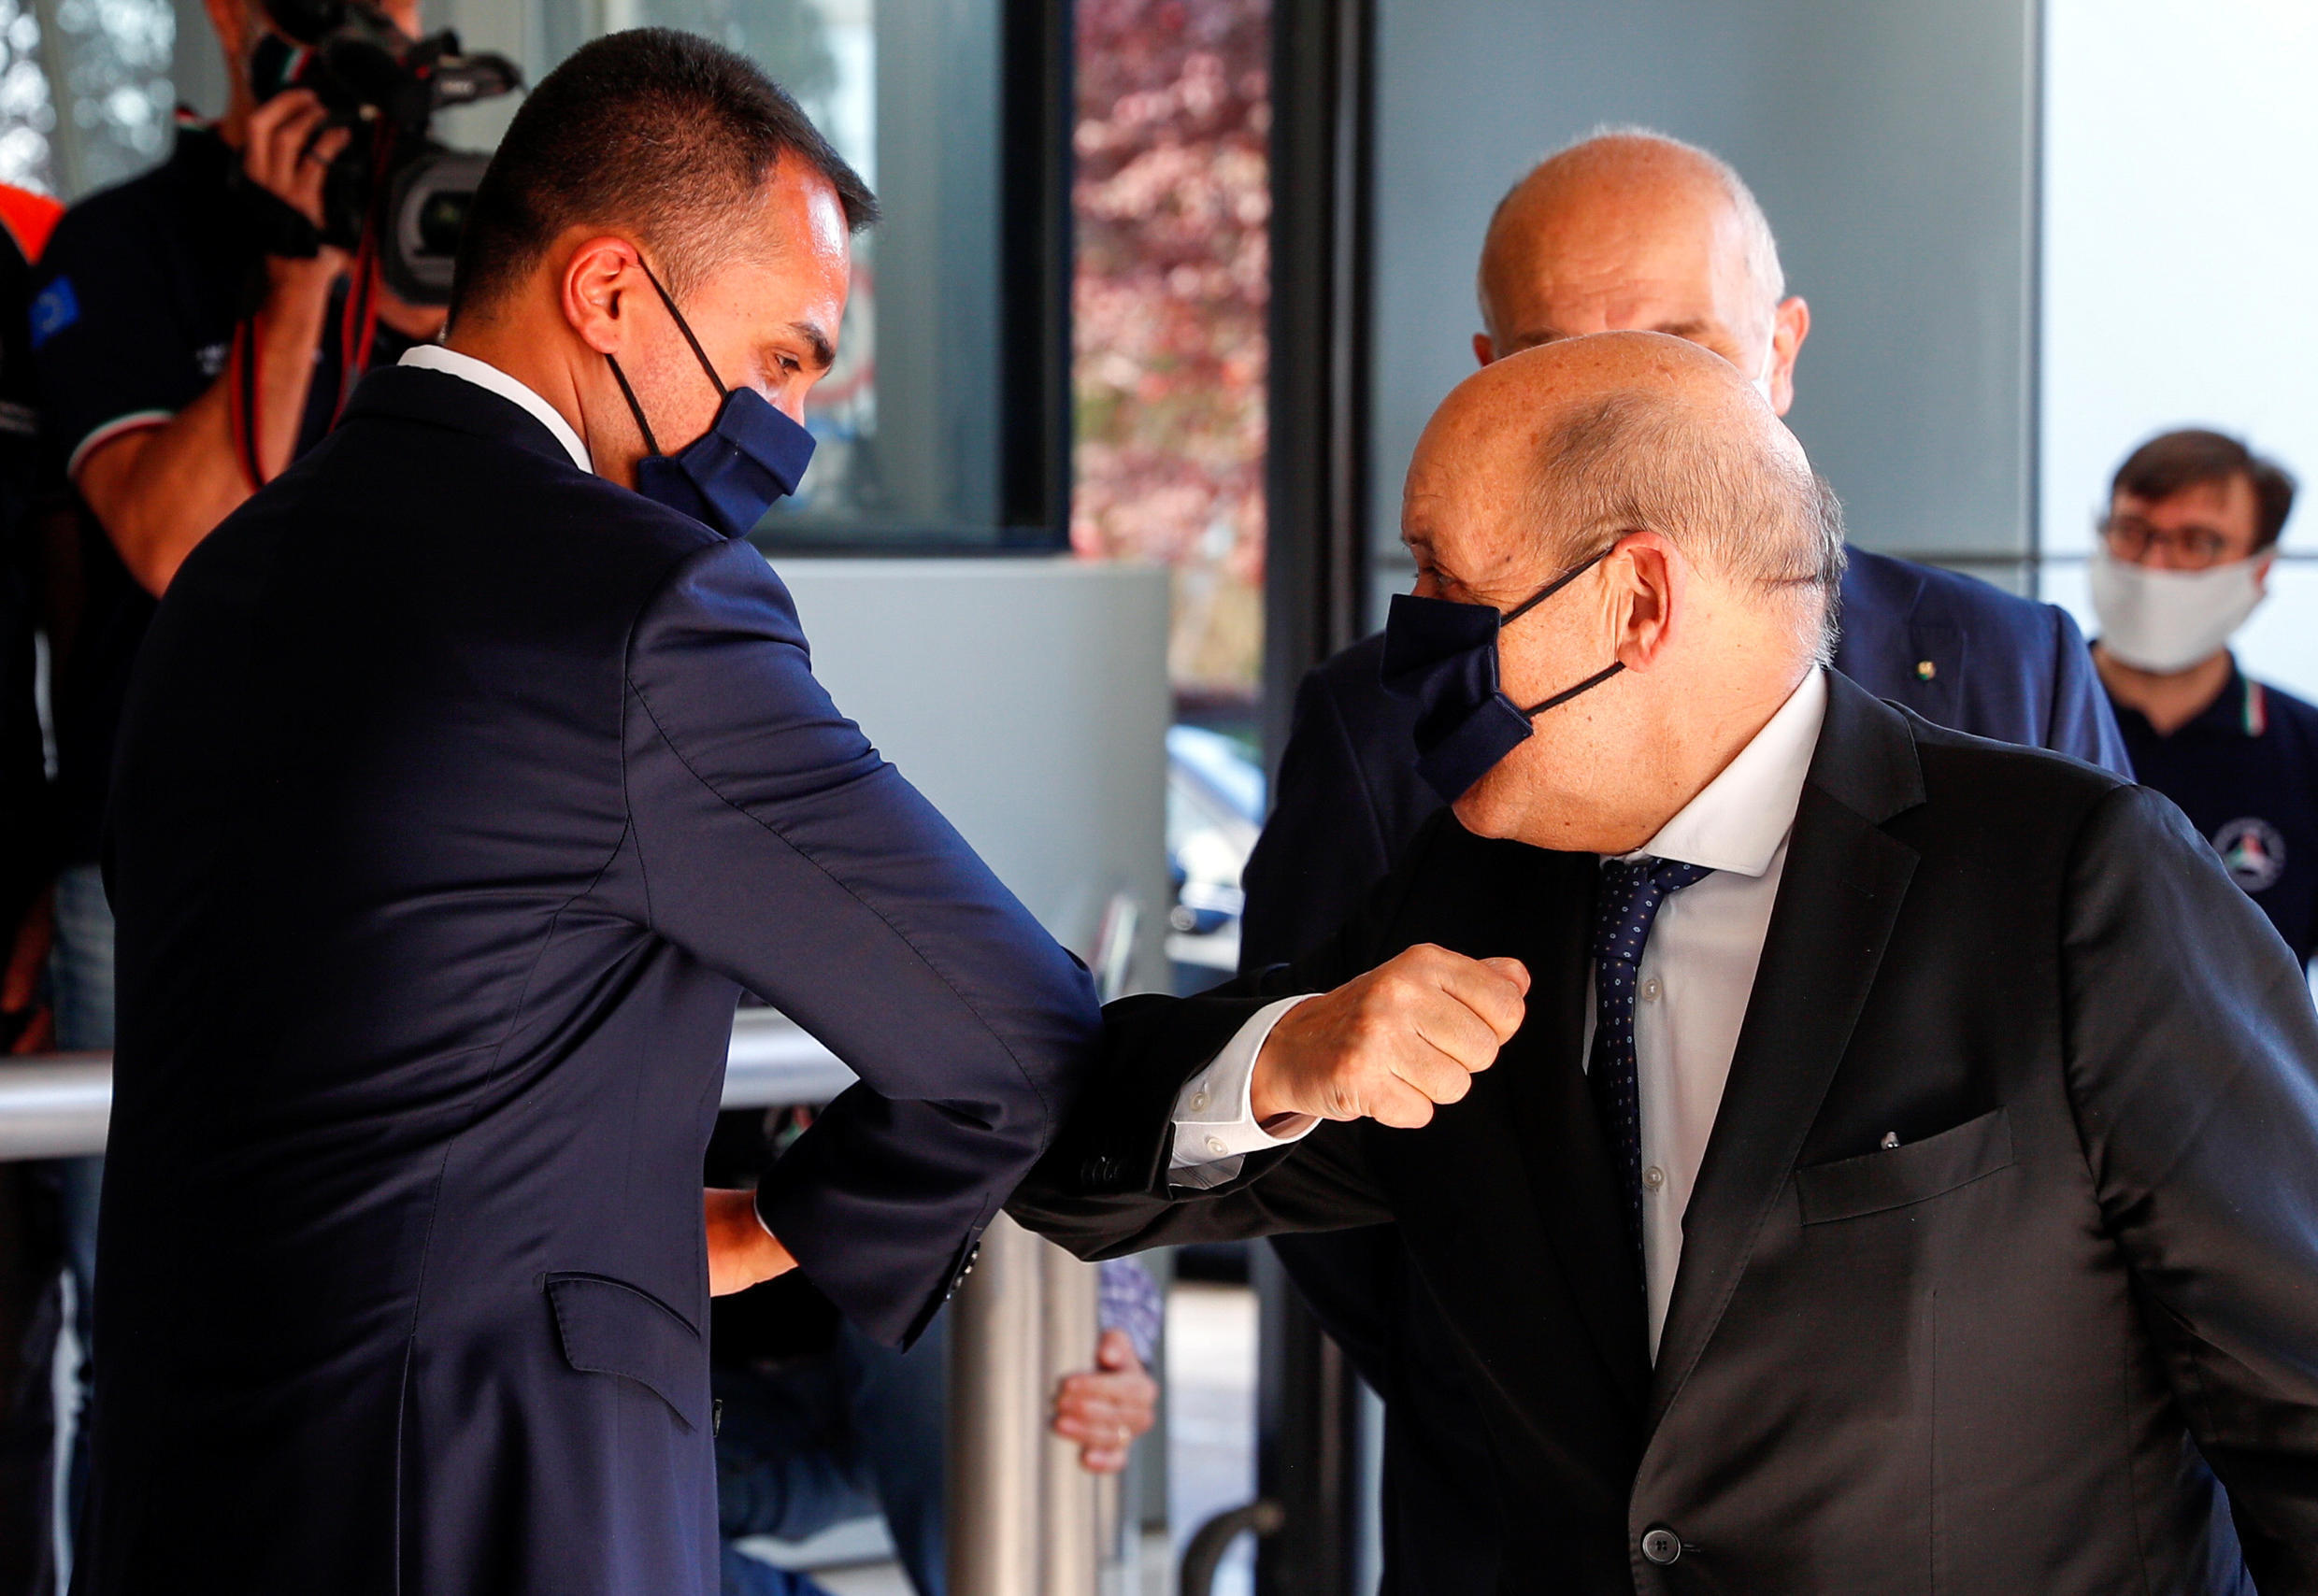 Italian Foreign Minister Luigi Di Maio and French Foreign Minister Jean-Yves Le Drian greet each-other with their elbows as they arrive at the Civil Protection Agency headquarters in Rome, Italy, June 3, 2020.